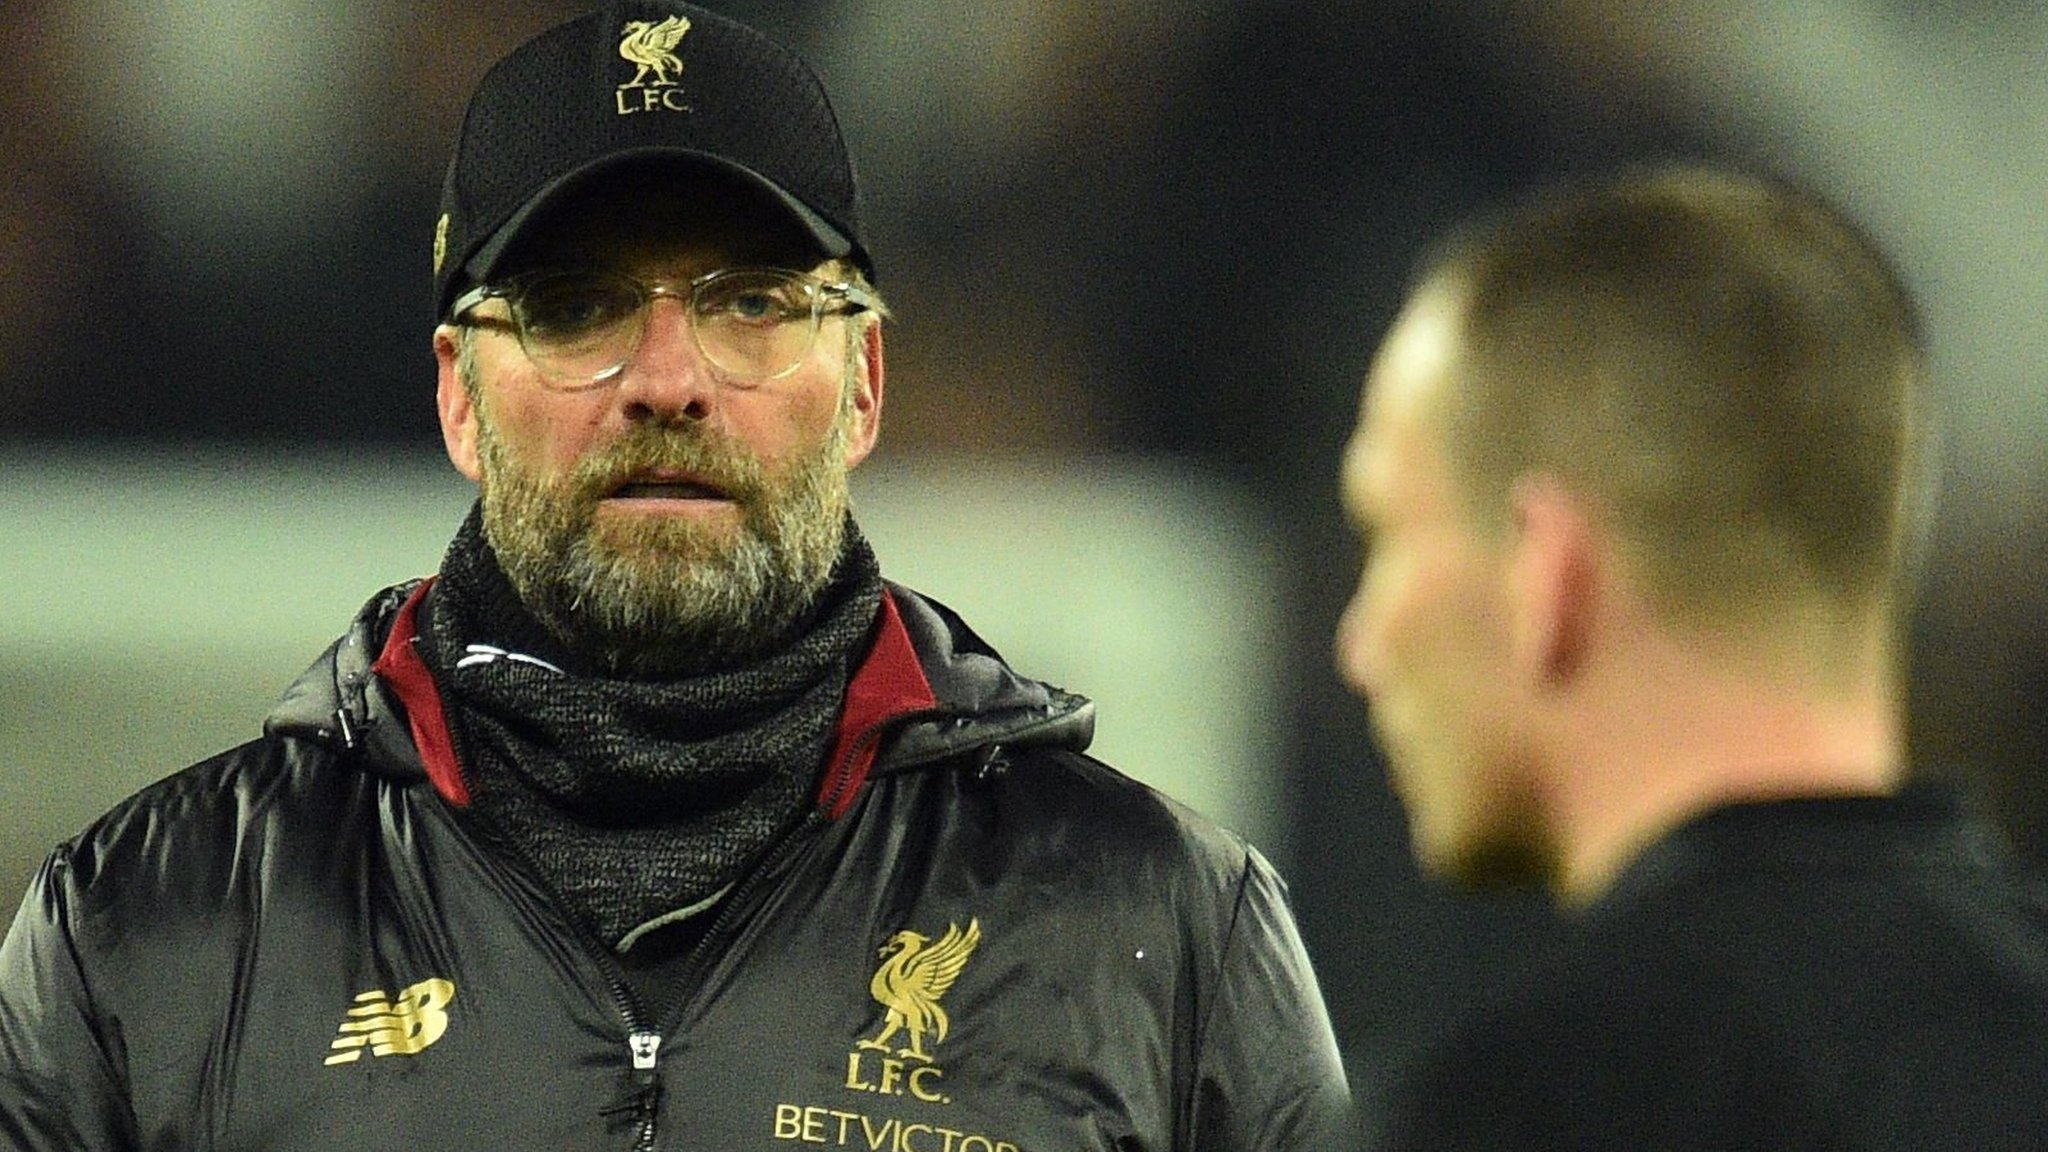 Liverpool boss Klopp fined £45,000 for referee comments